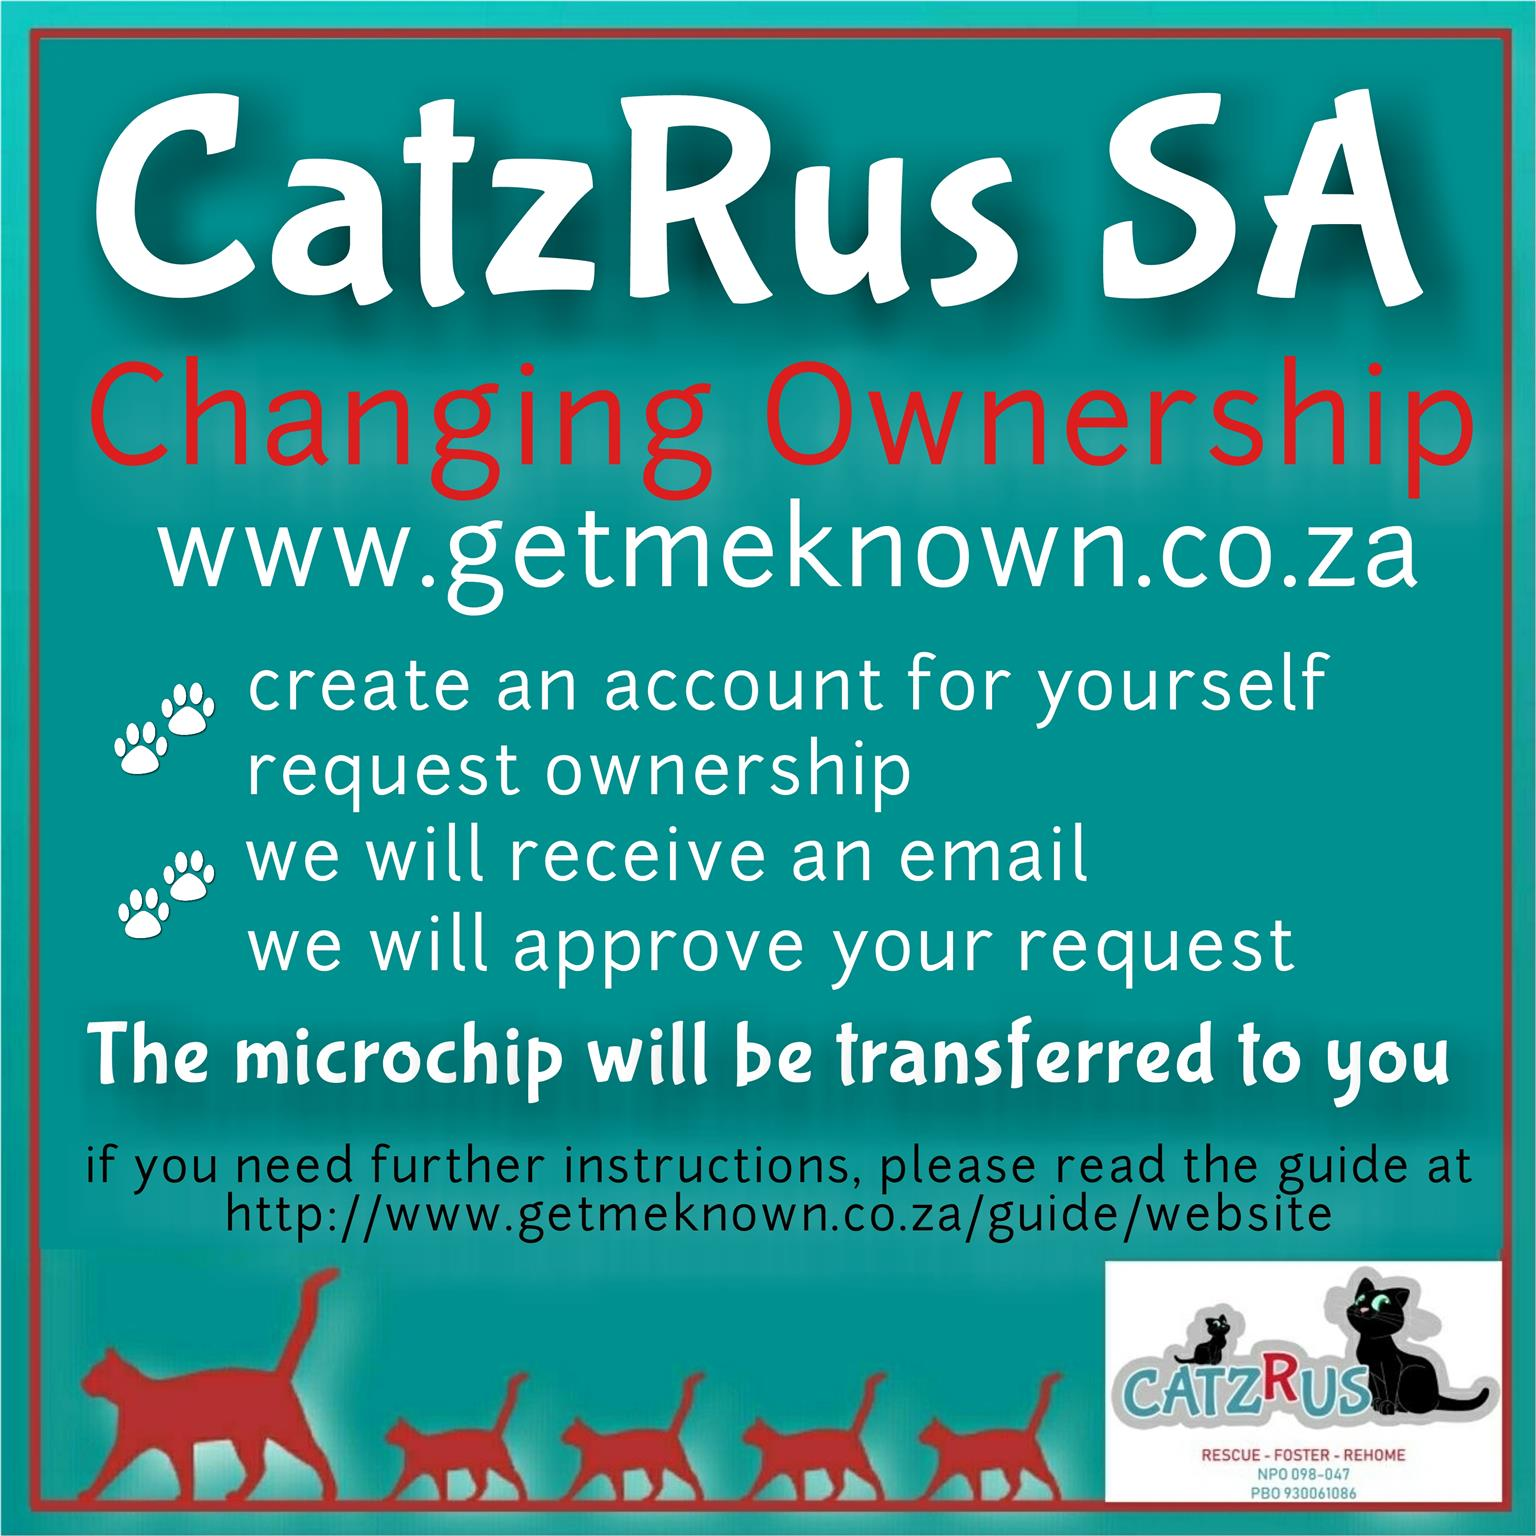 Meet our latest Poster Kids. Cats and kittens to adopt from CatzRus.